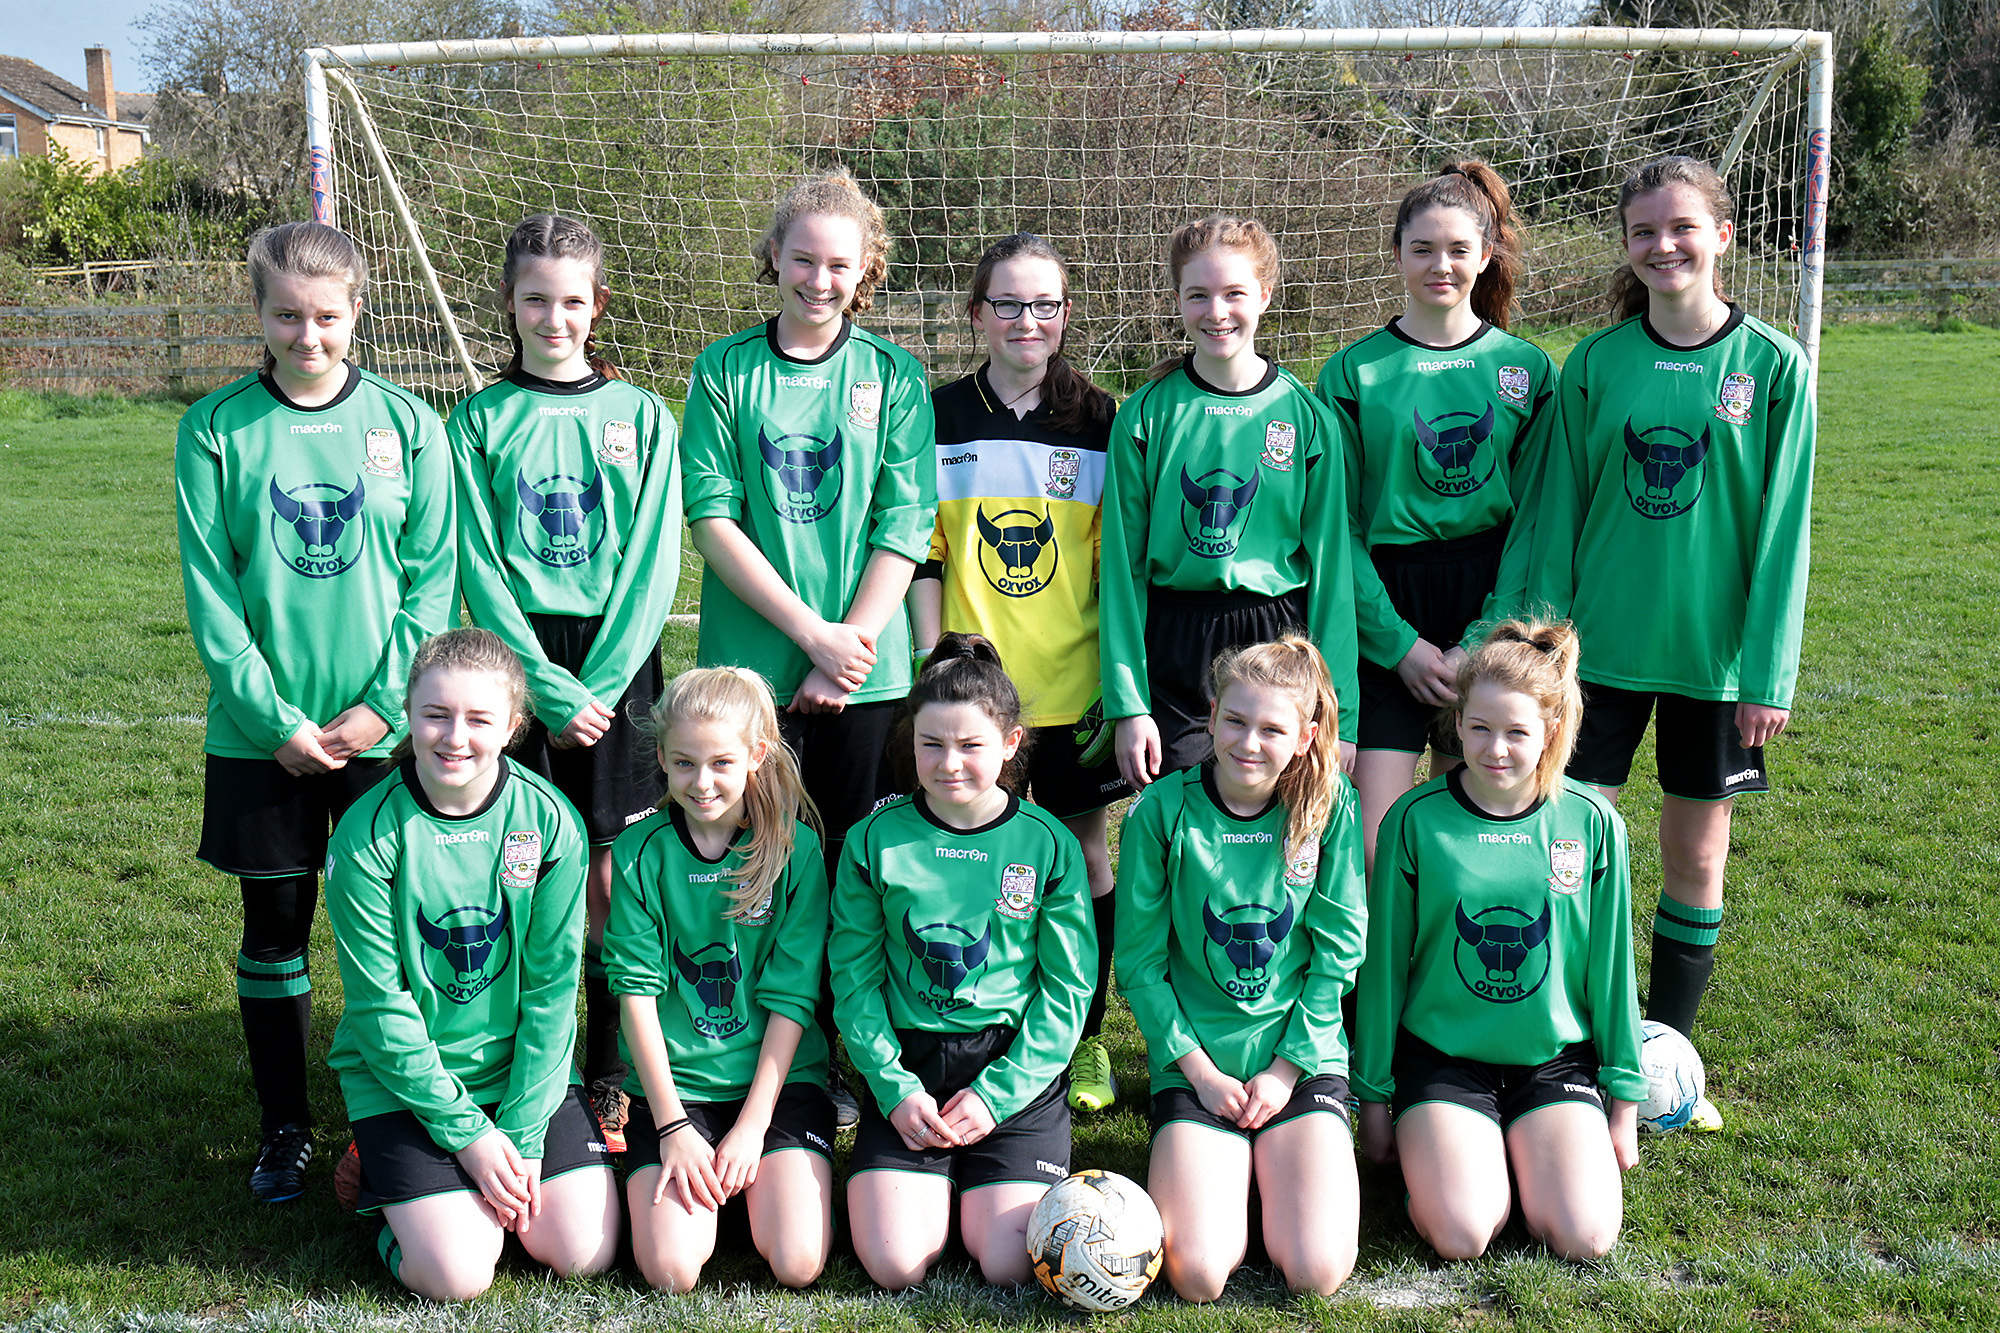 GOING THROUGH: Kidlington defeated Wantage 3-0 on penalties in the Under 13 League Cup. Back (from left): Jess Auat, Fiona Baker, Taylor Jenkins, Lea Hague, Rebecca Pegden, Ellie Walker, Anna Hipkiss. Front: Molly Poulter, Faith Toan, Millie McKenzie-Witt